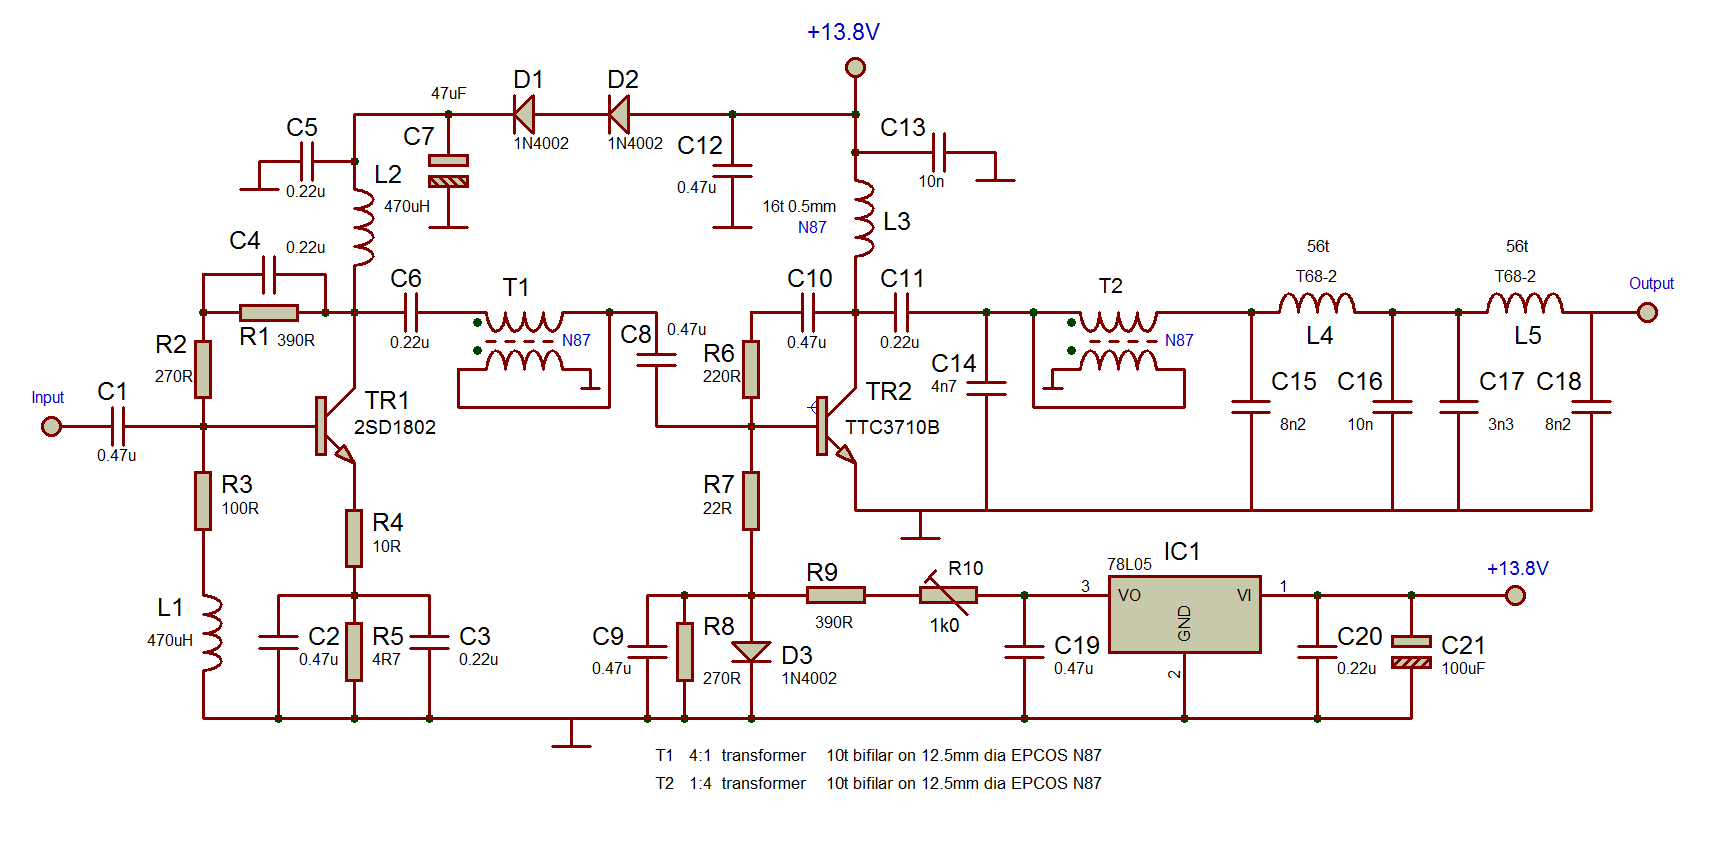 5 Watt Amplifier Circuit Diagram Wiring Library Understanding Xenon Flash Tube Circuits Tutorial The Is A 2 Stage Design And Uses Npn Transistors In Preference To Fets